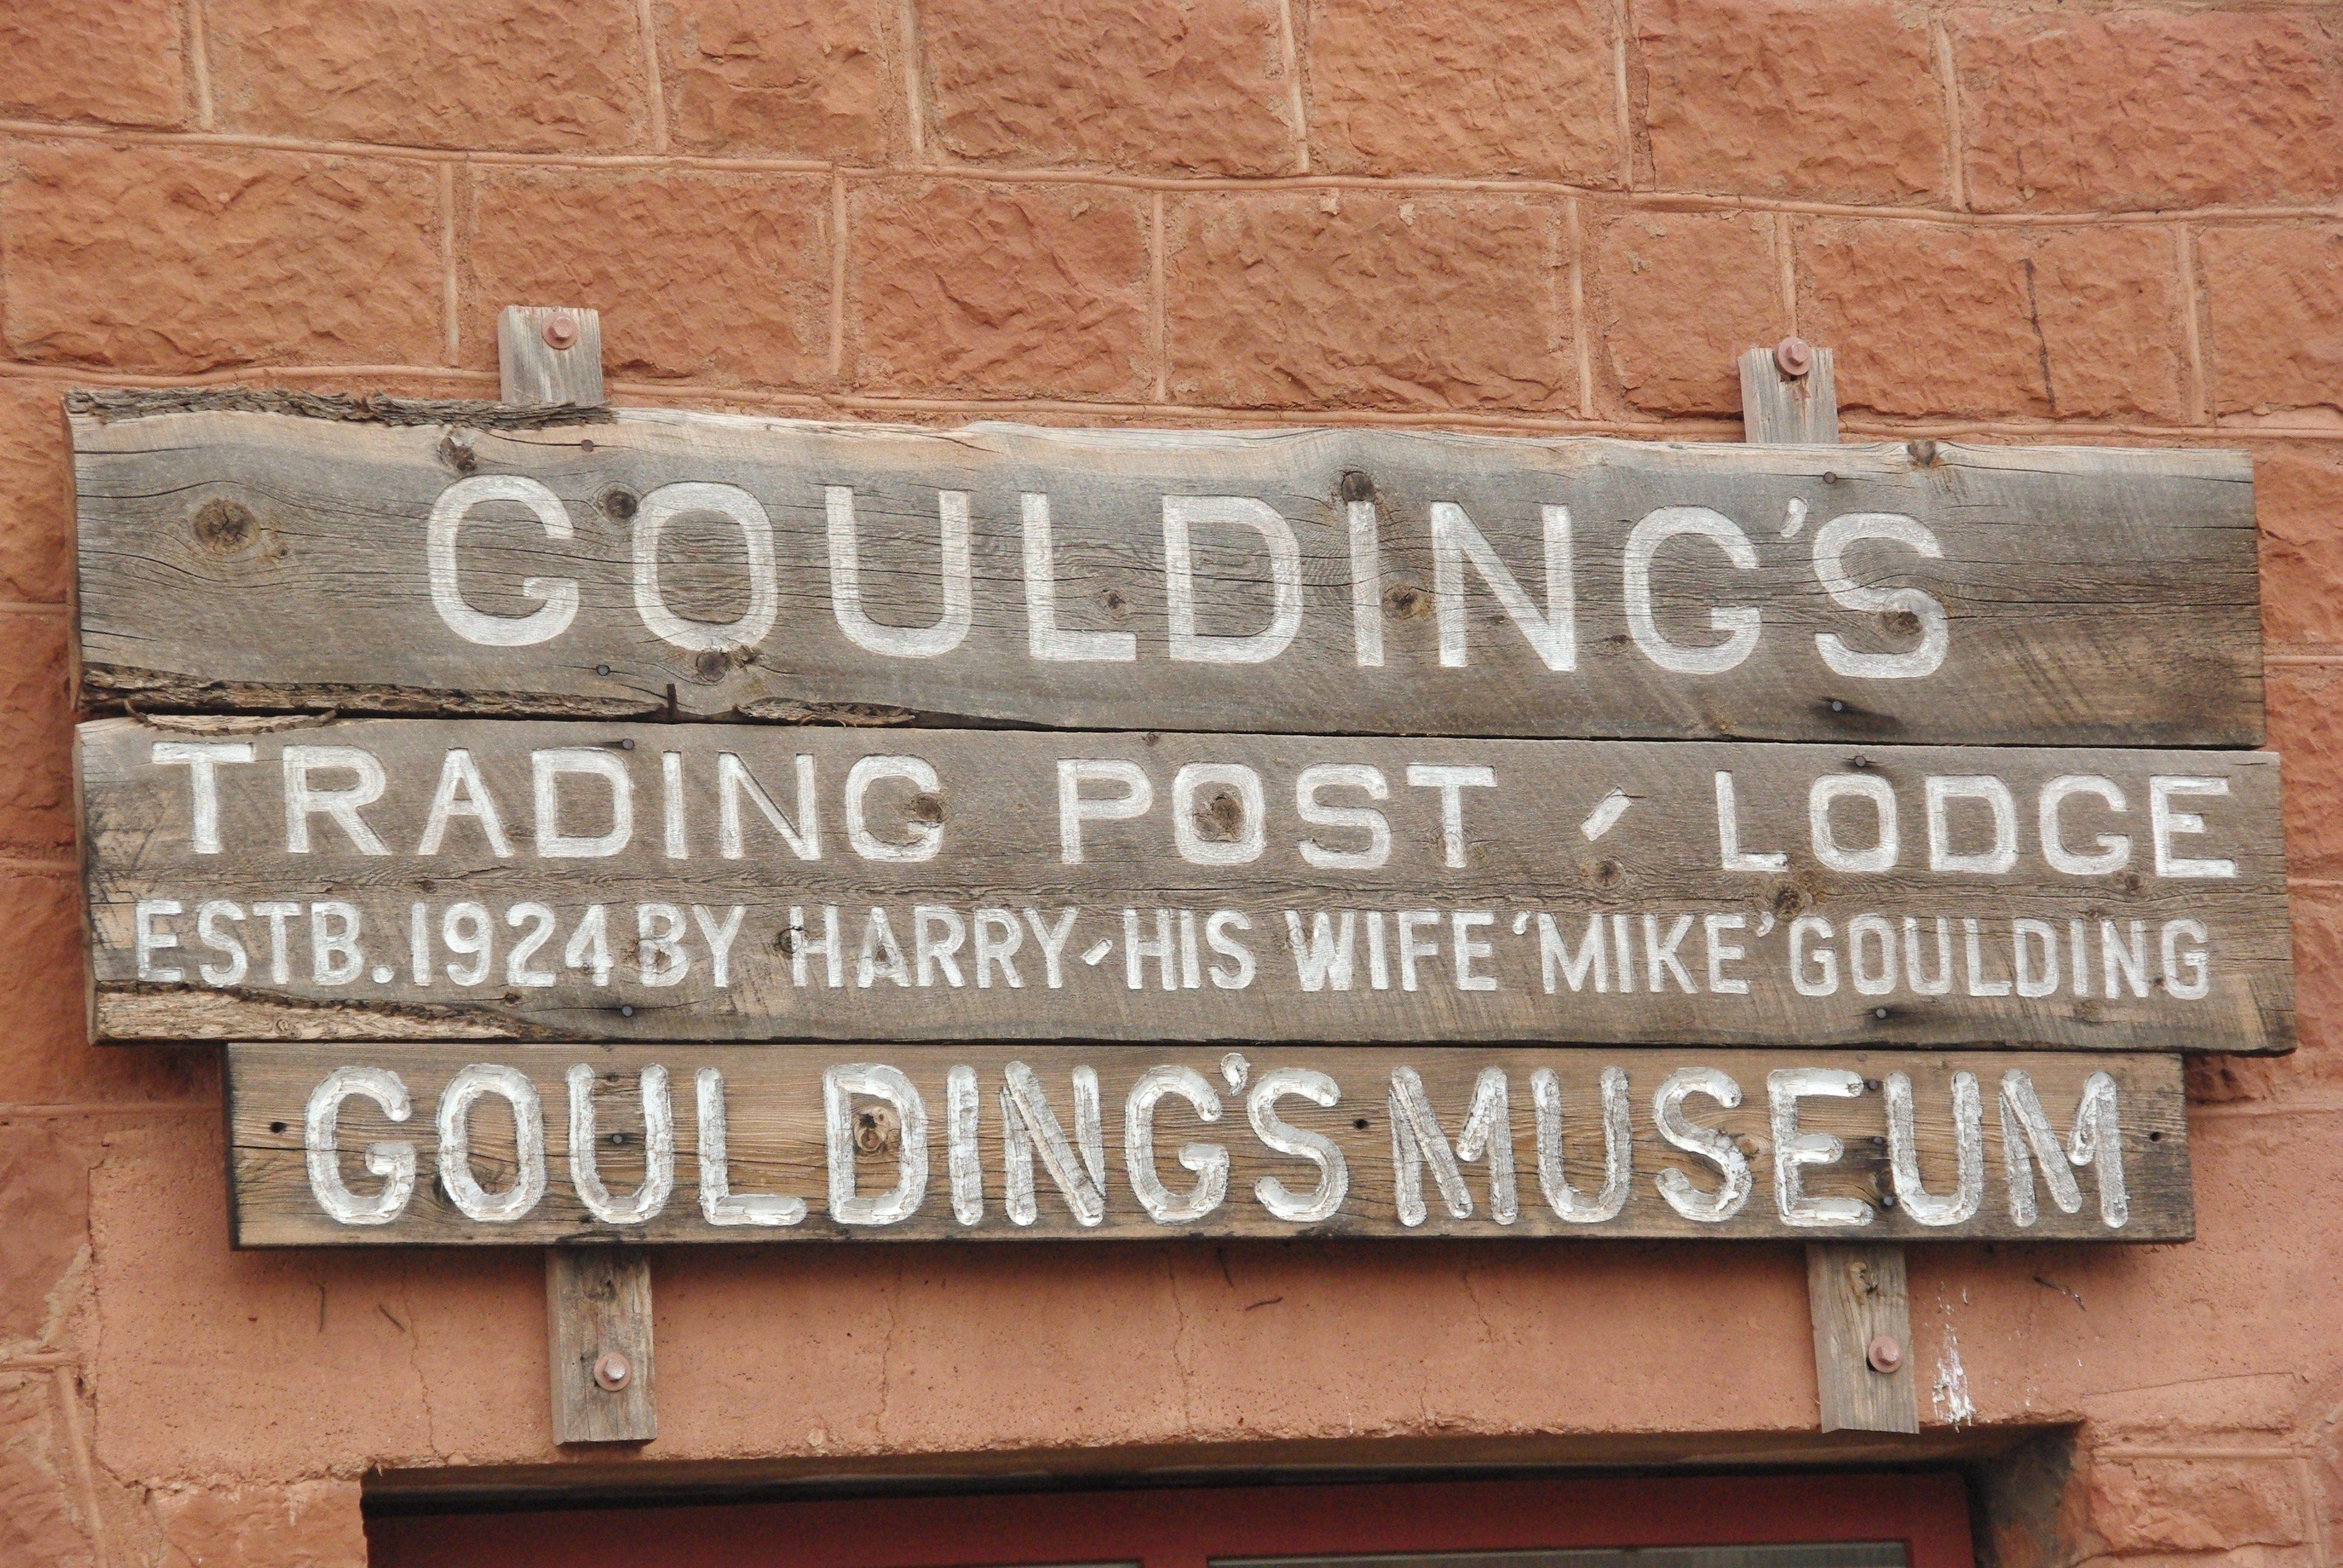 goulding lodge - Bing Images